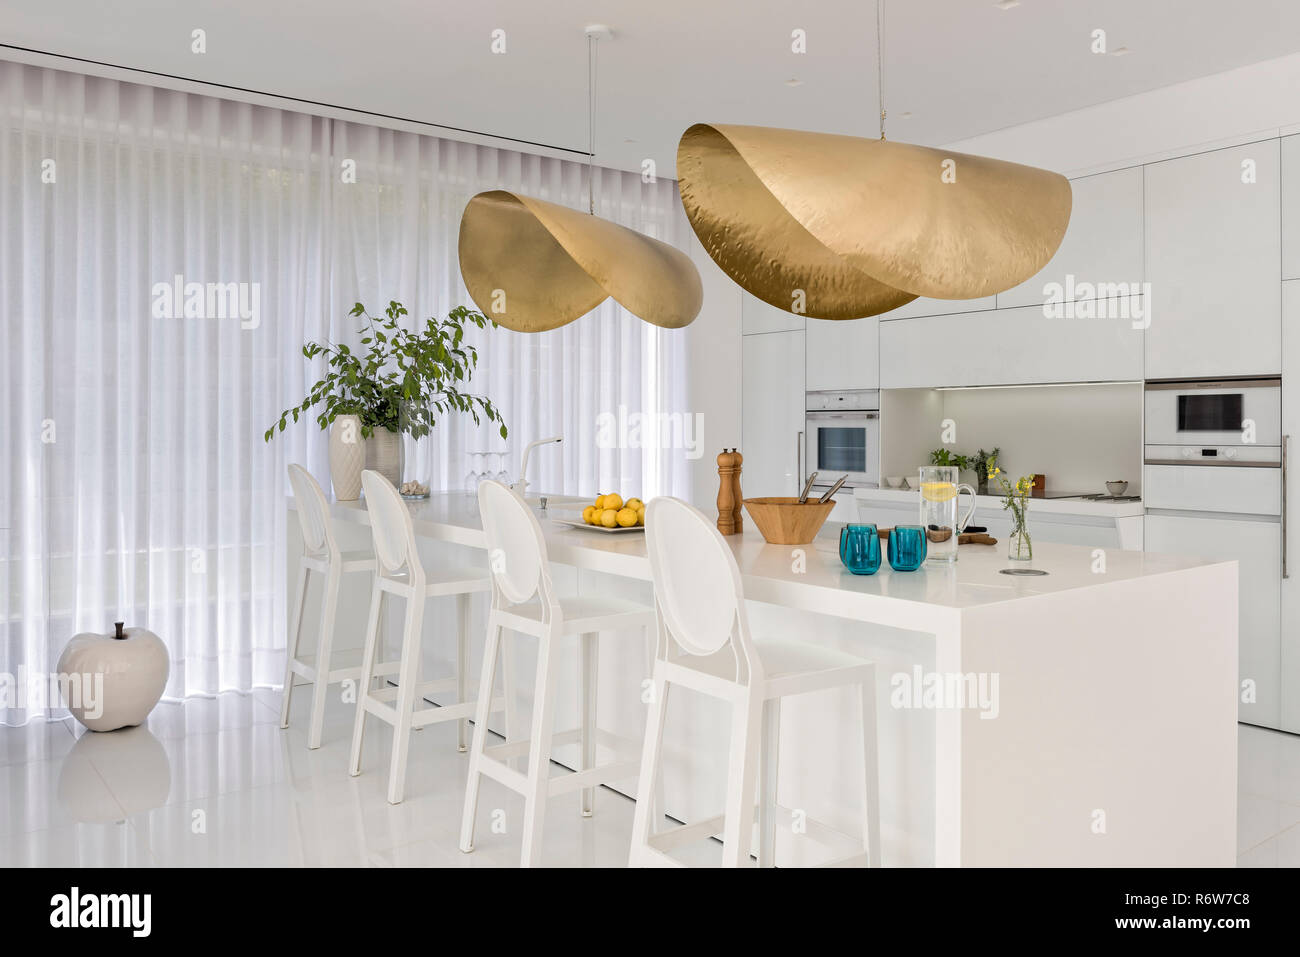 Hammered gold shades above kitchen island in new build villa, Quinta do Lago - Stock Image